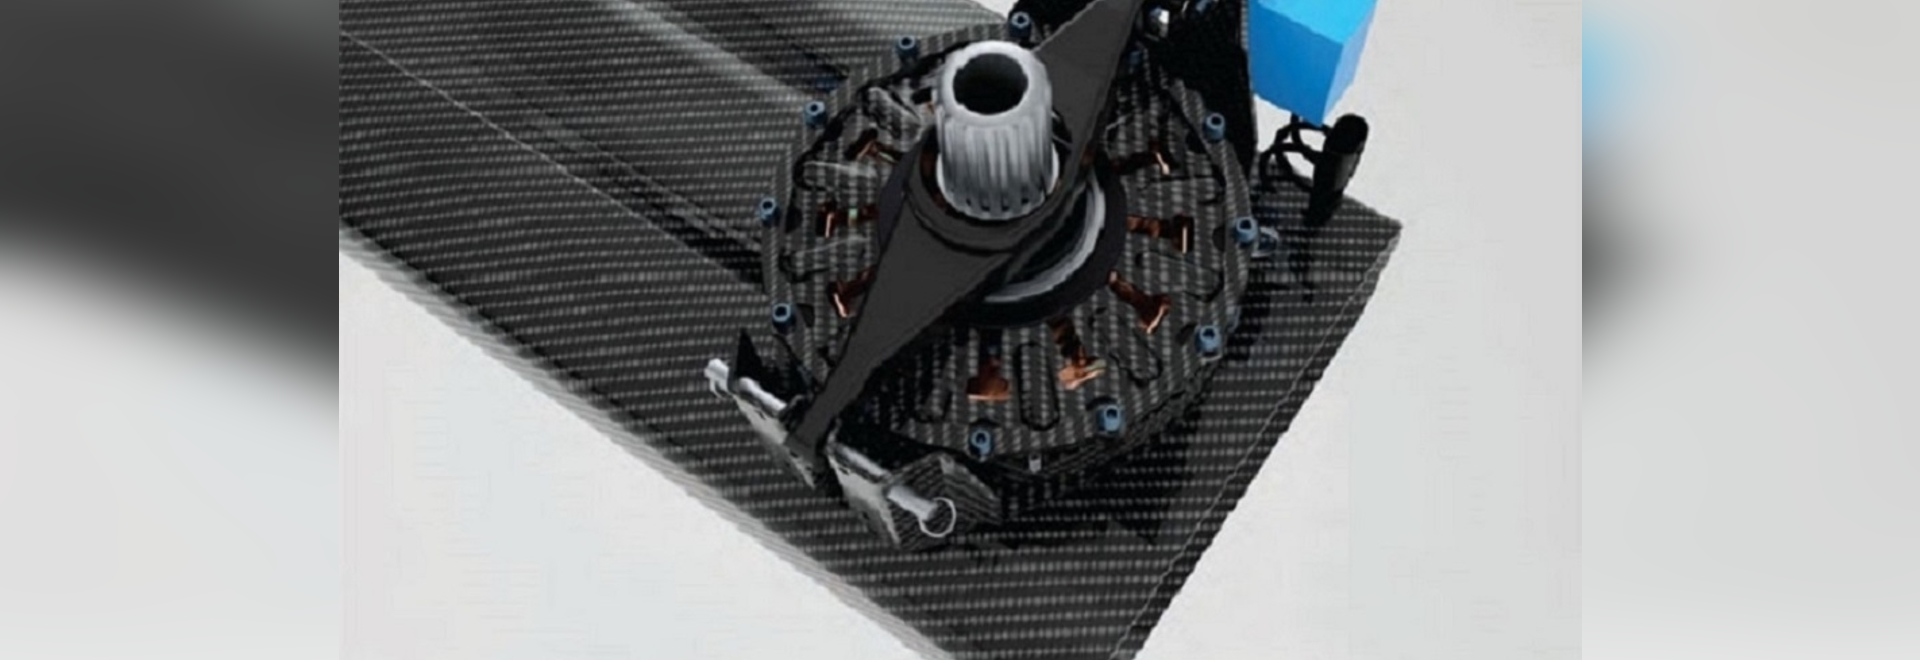 nope, it's not a next generation superbike clutch; it's the all-carbon clutch from an AC75 grinder pedestal, which allows genuinely seamless gear changes. Developed by Harken and refined into two n...